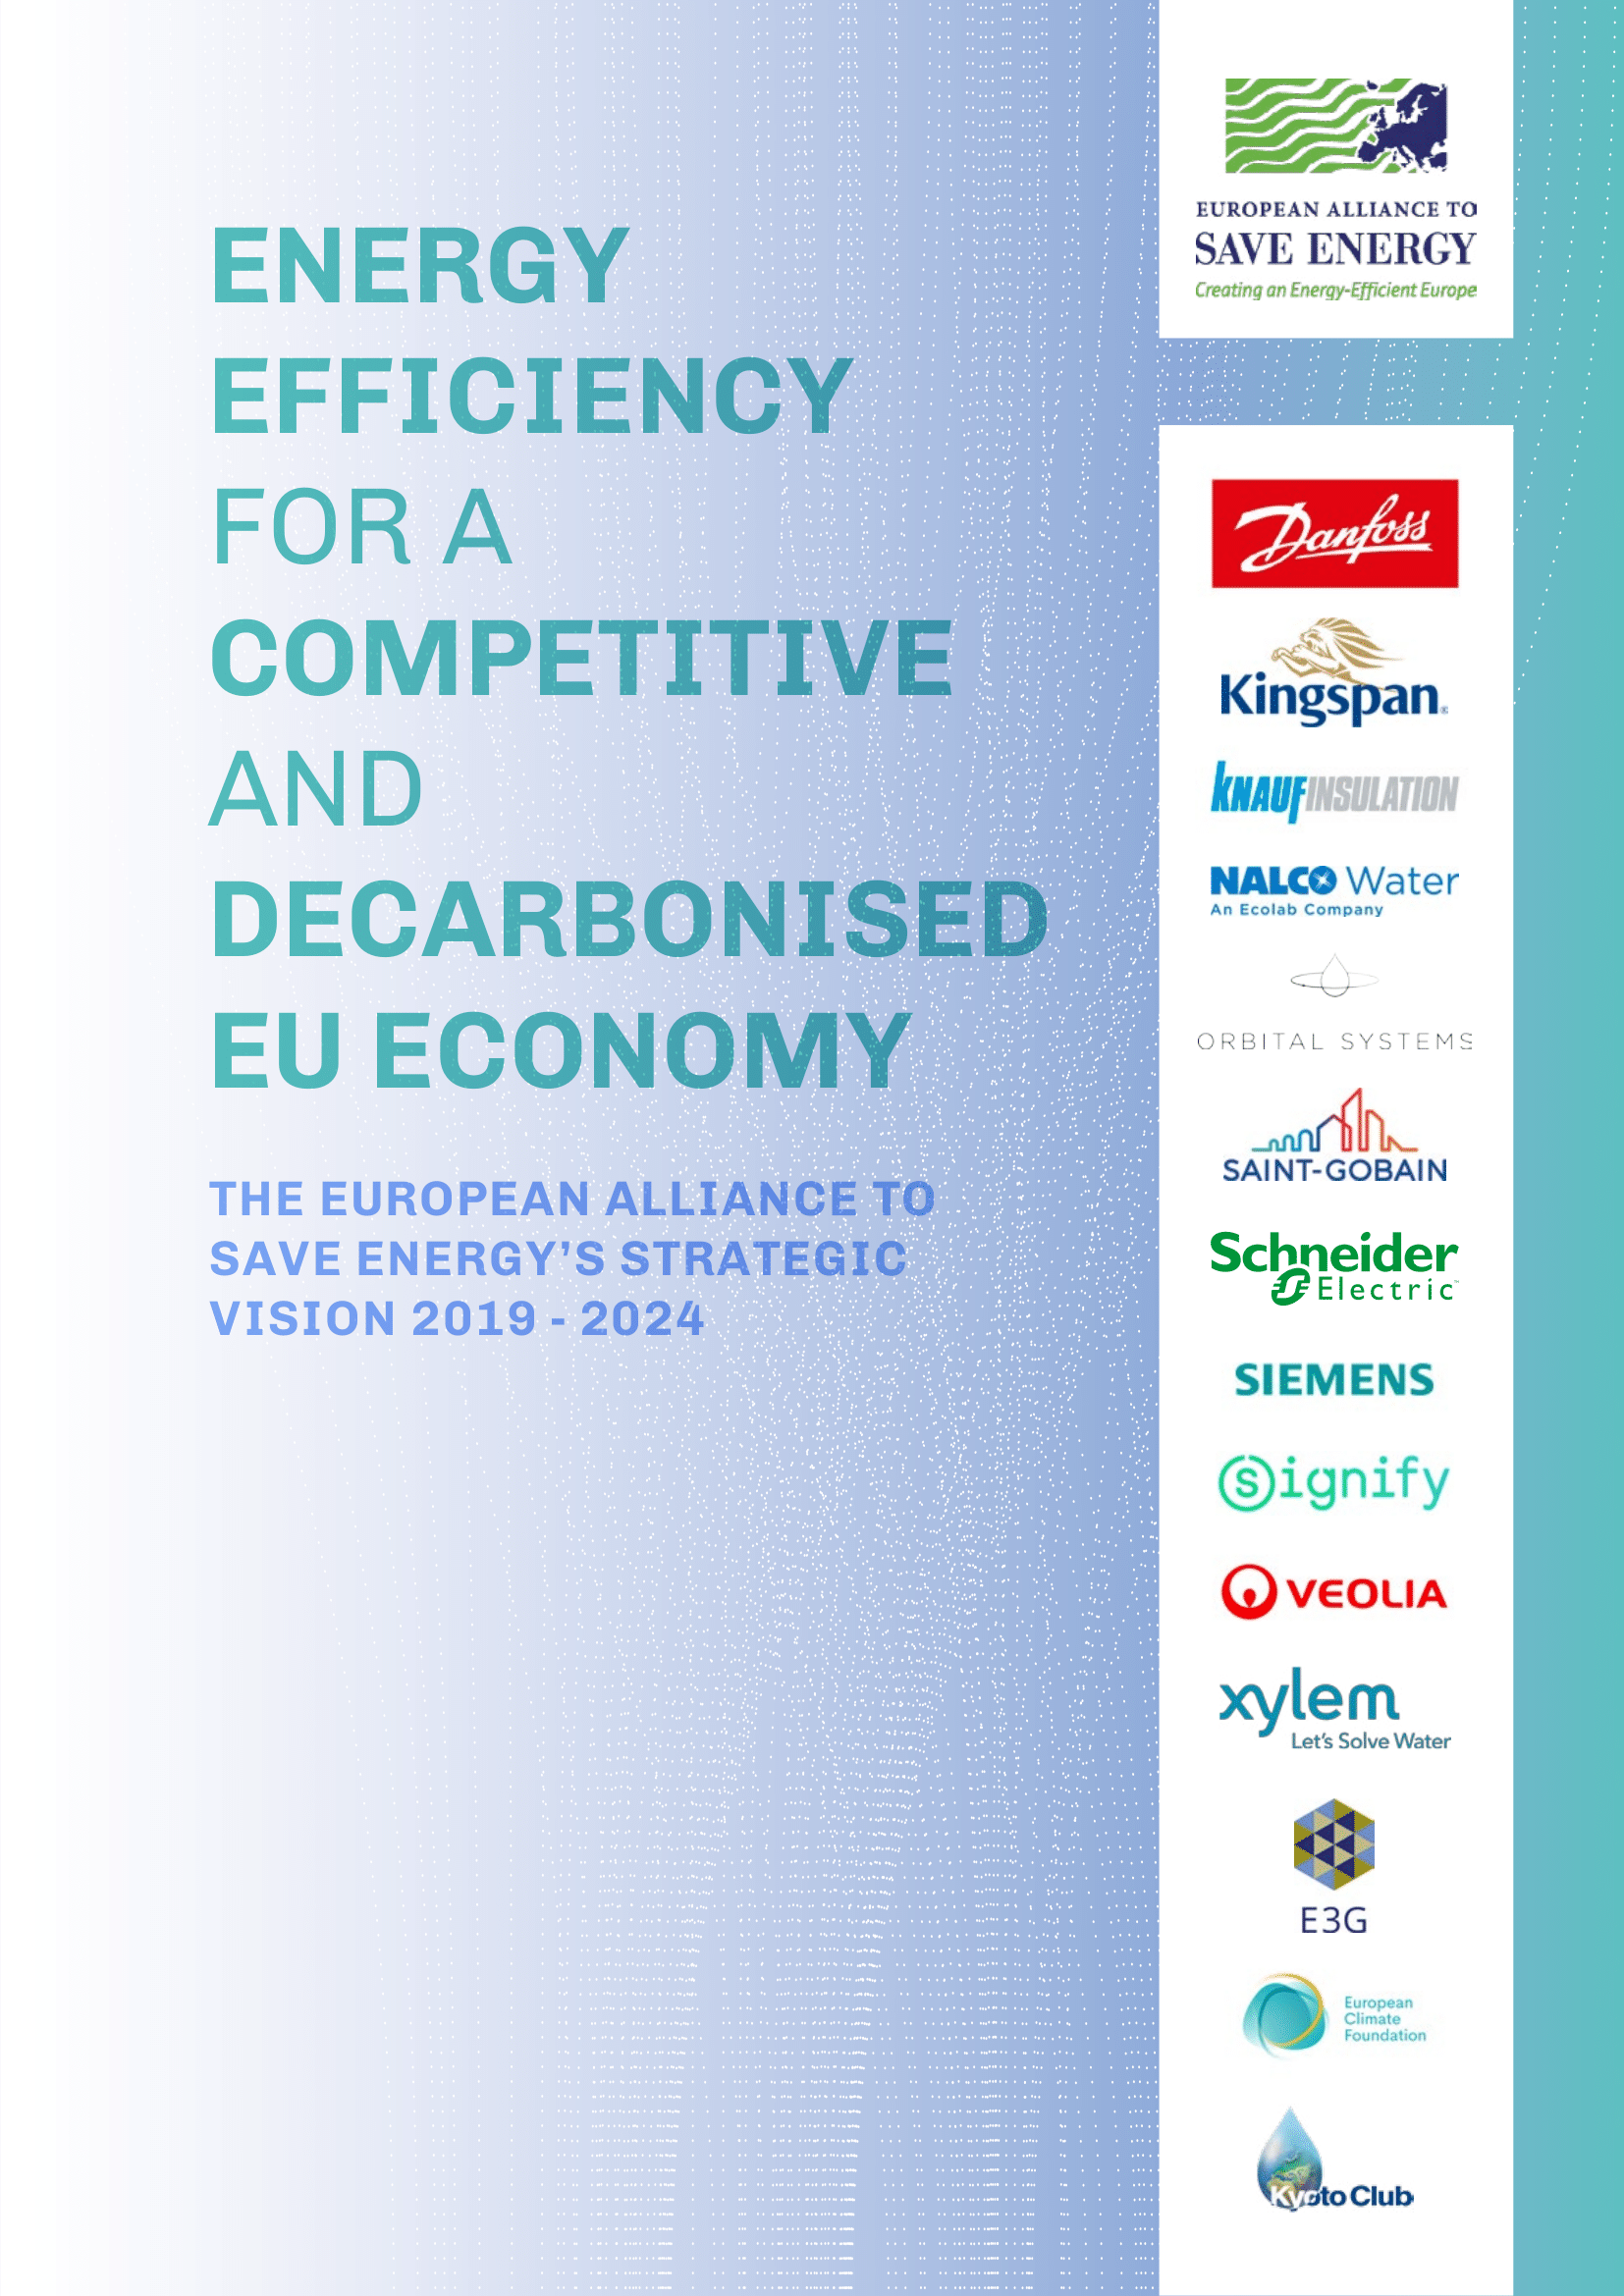 Energy Efficiency for a competitive and decarbonised EU economy